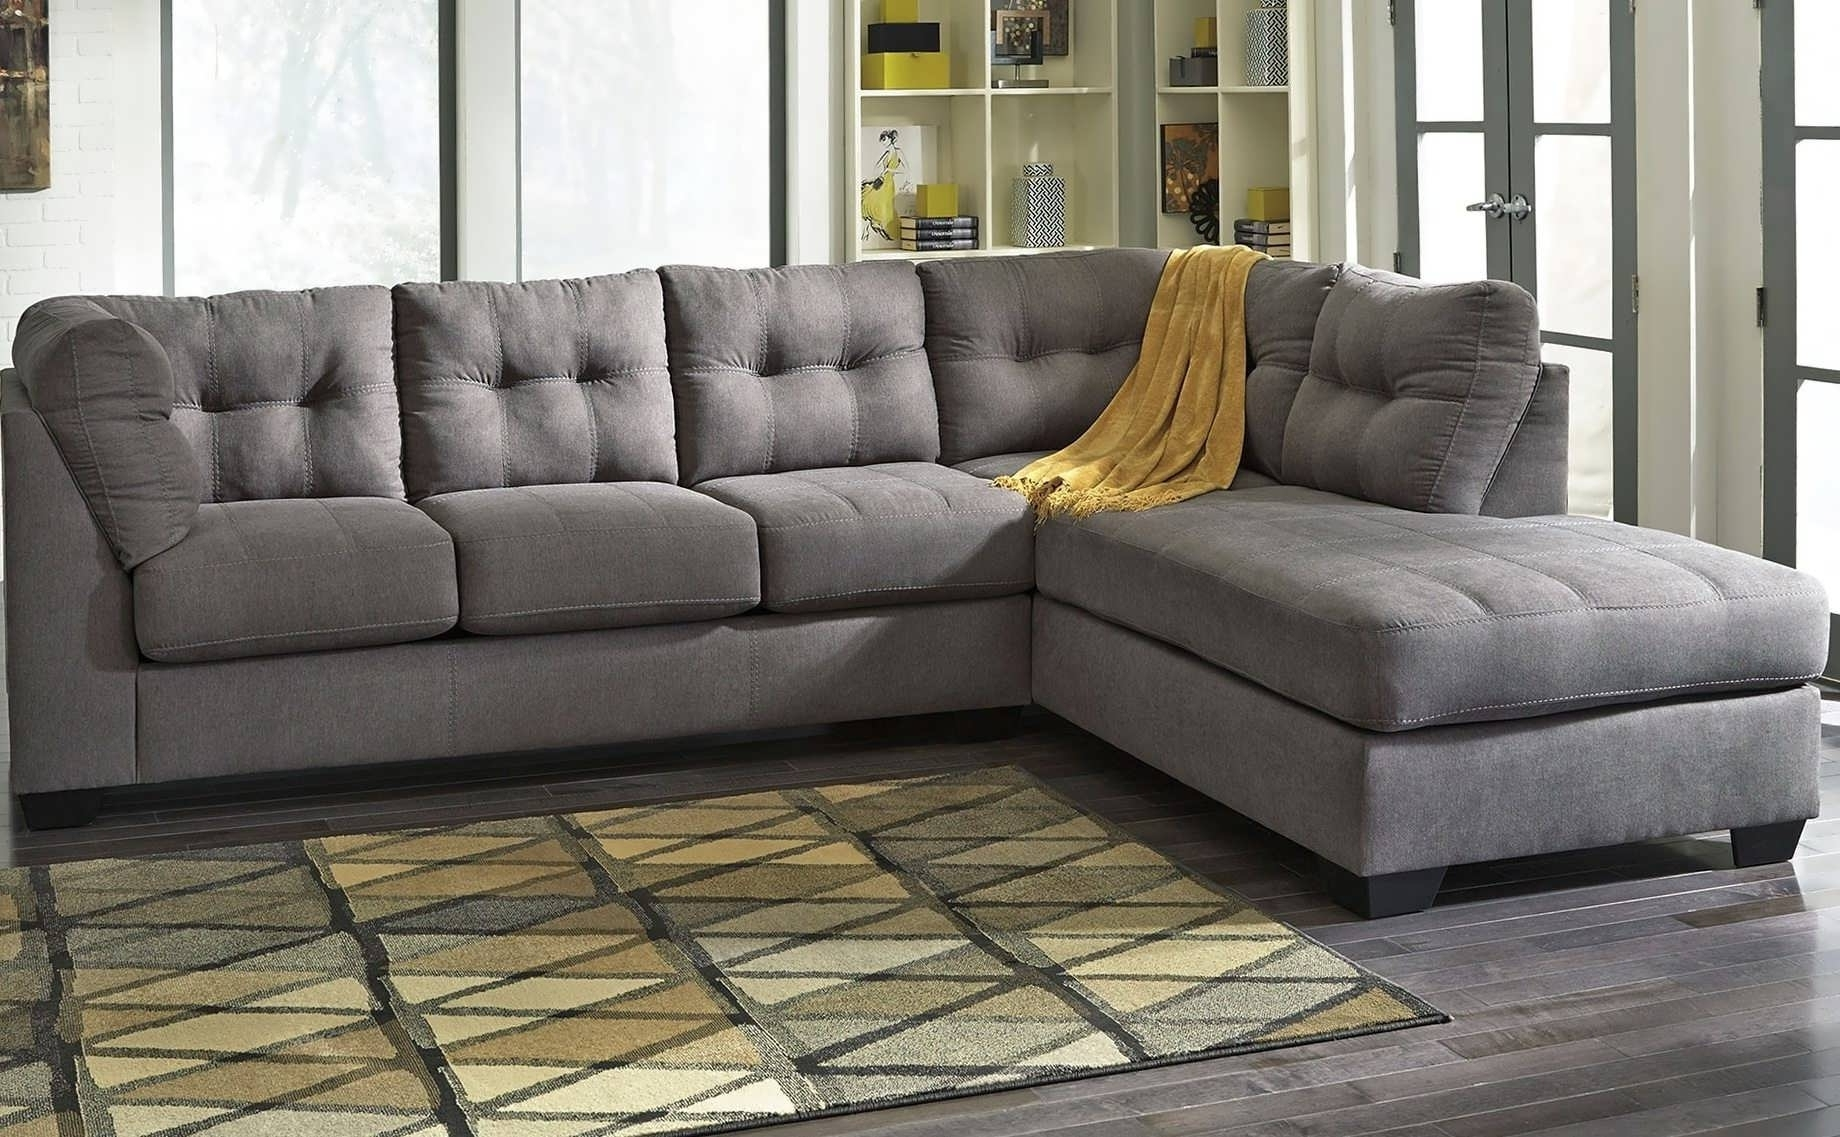 2018 Sofa : Grey Sectional With Chaise Oversized Sectional Sofa White With Grey Couches With Chaise (View 7 of 15)